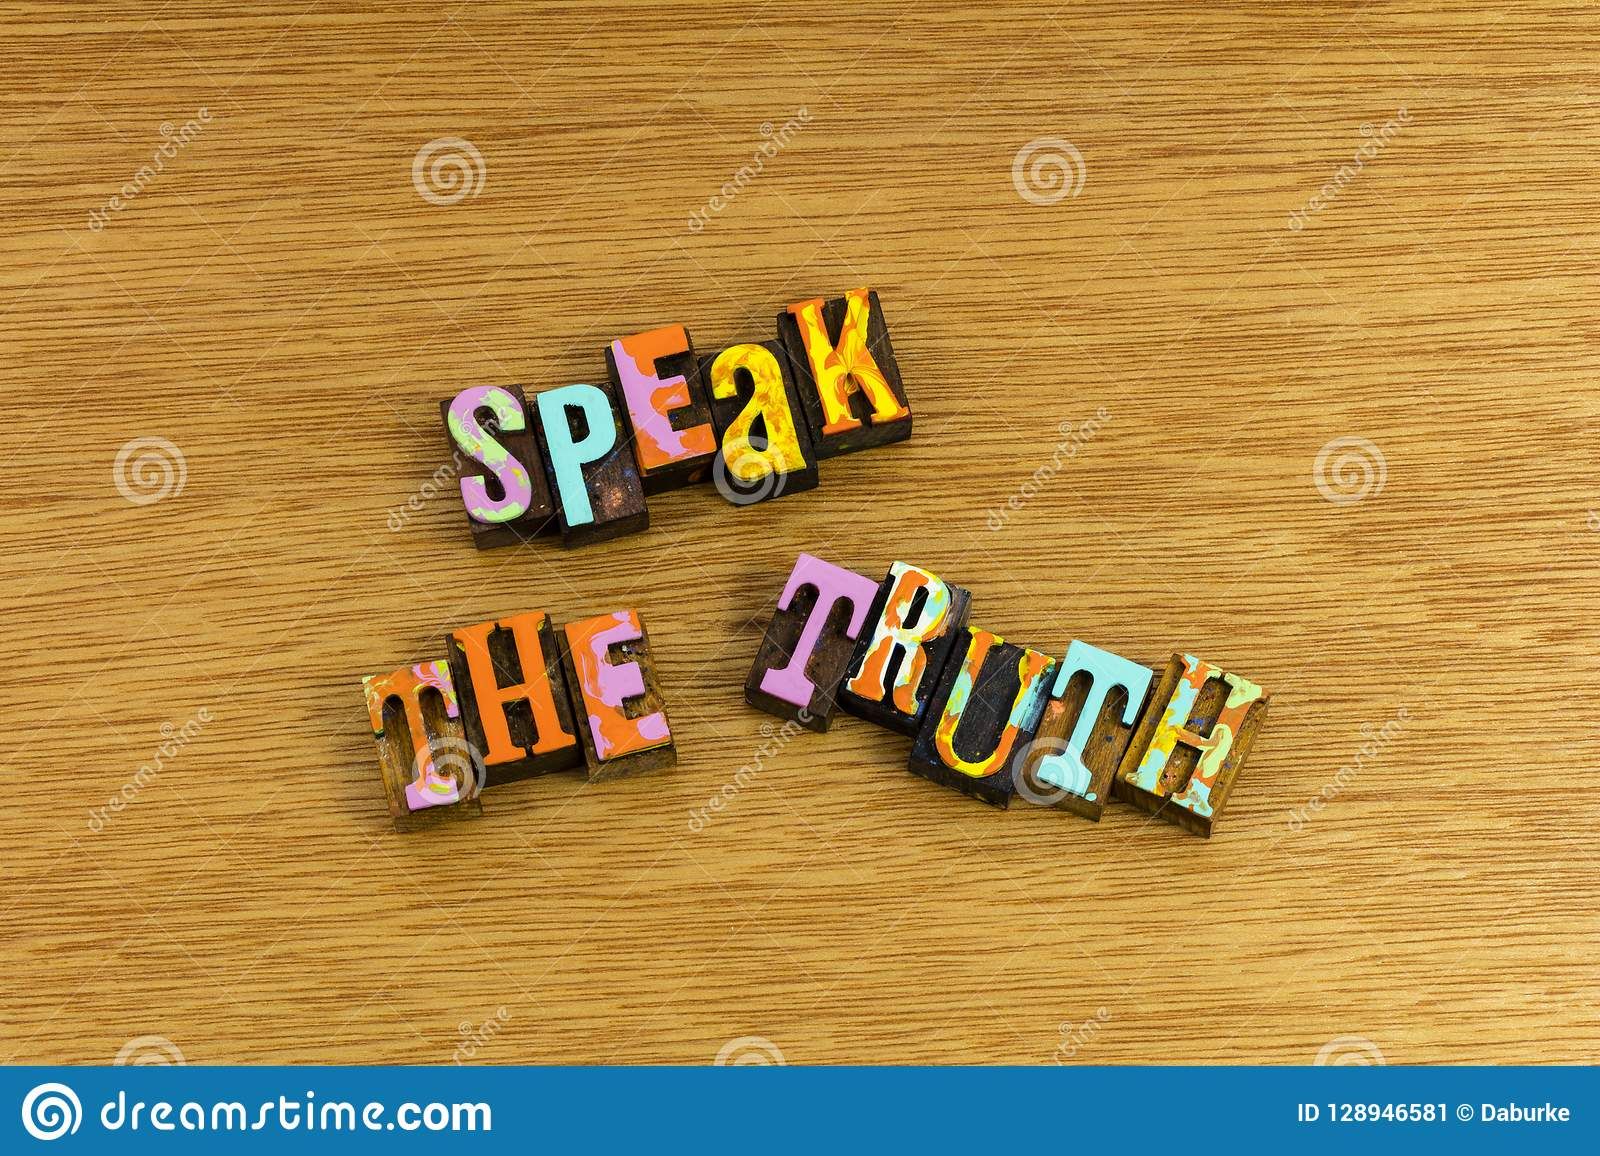 Speak truth honesty voice